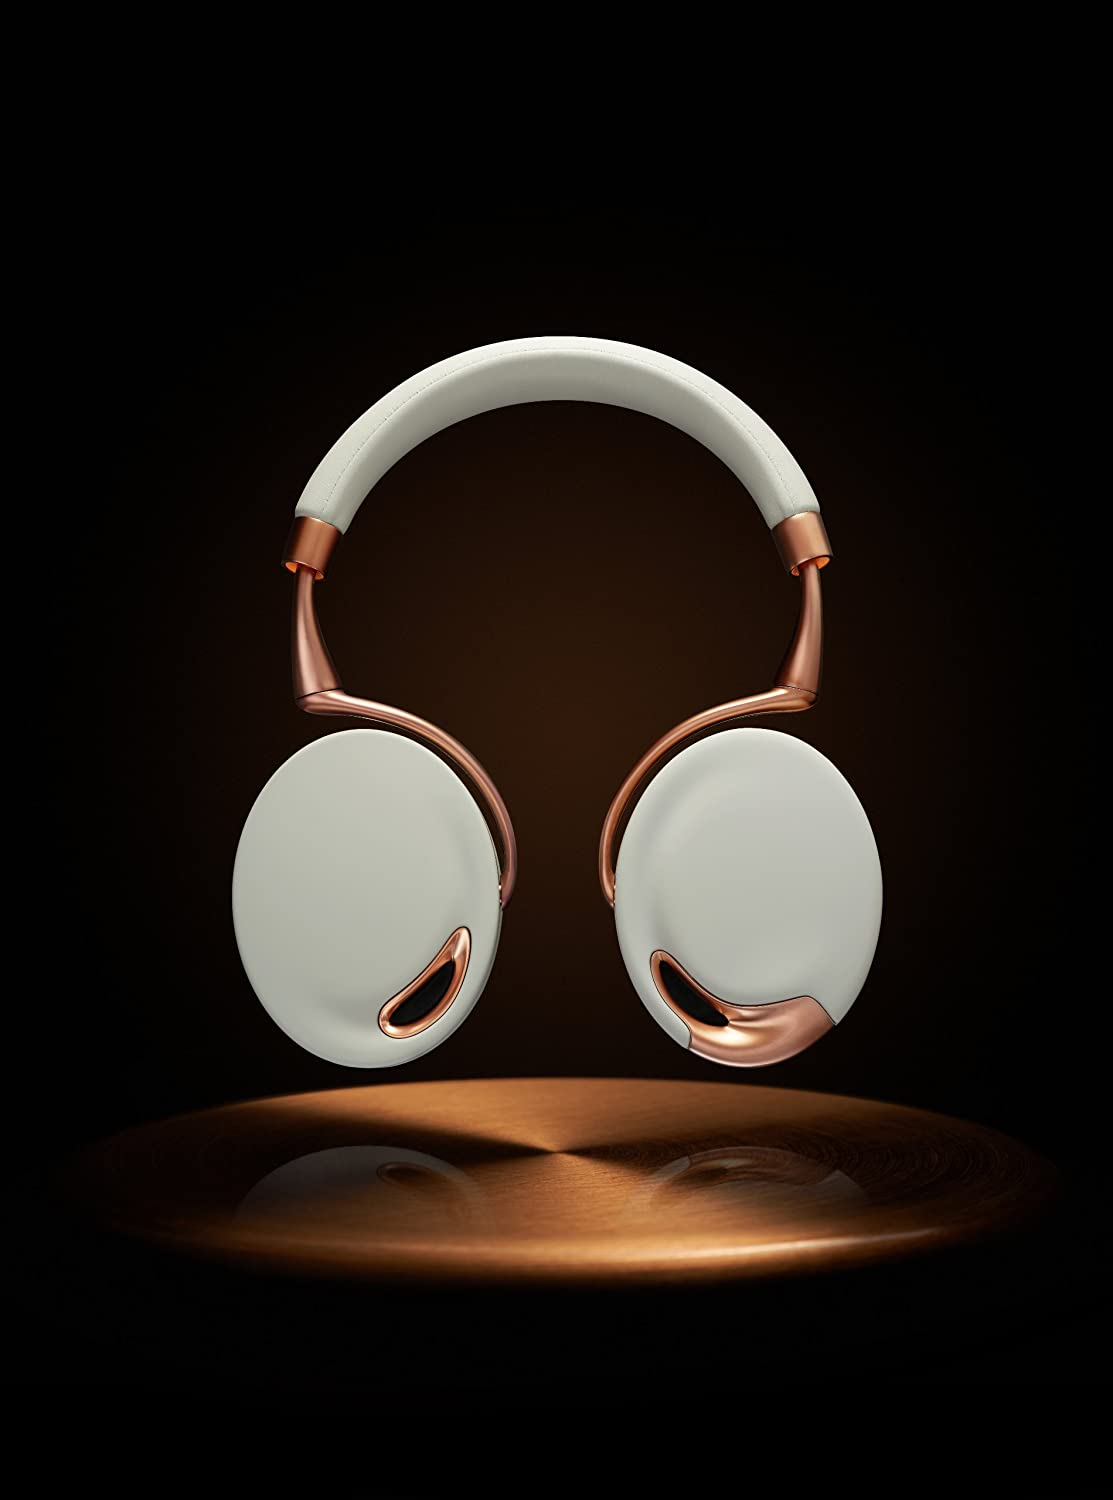 Parrot Zik Wireless Best Noise Cancelling Headphones